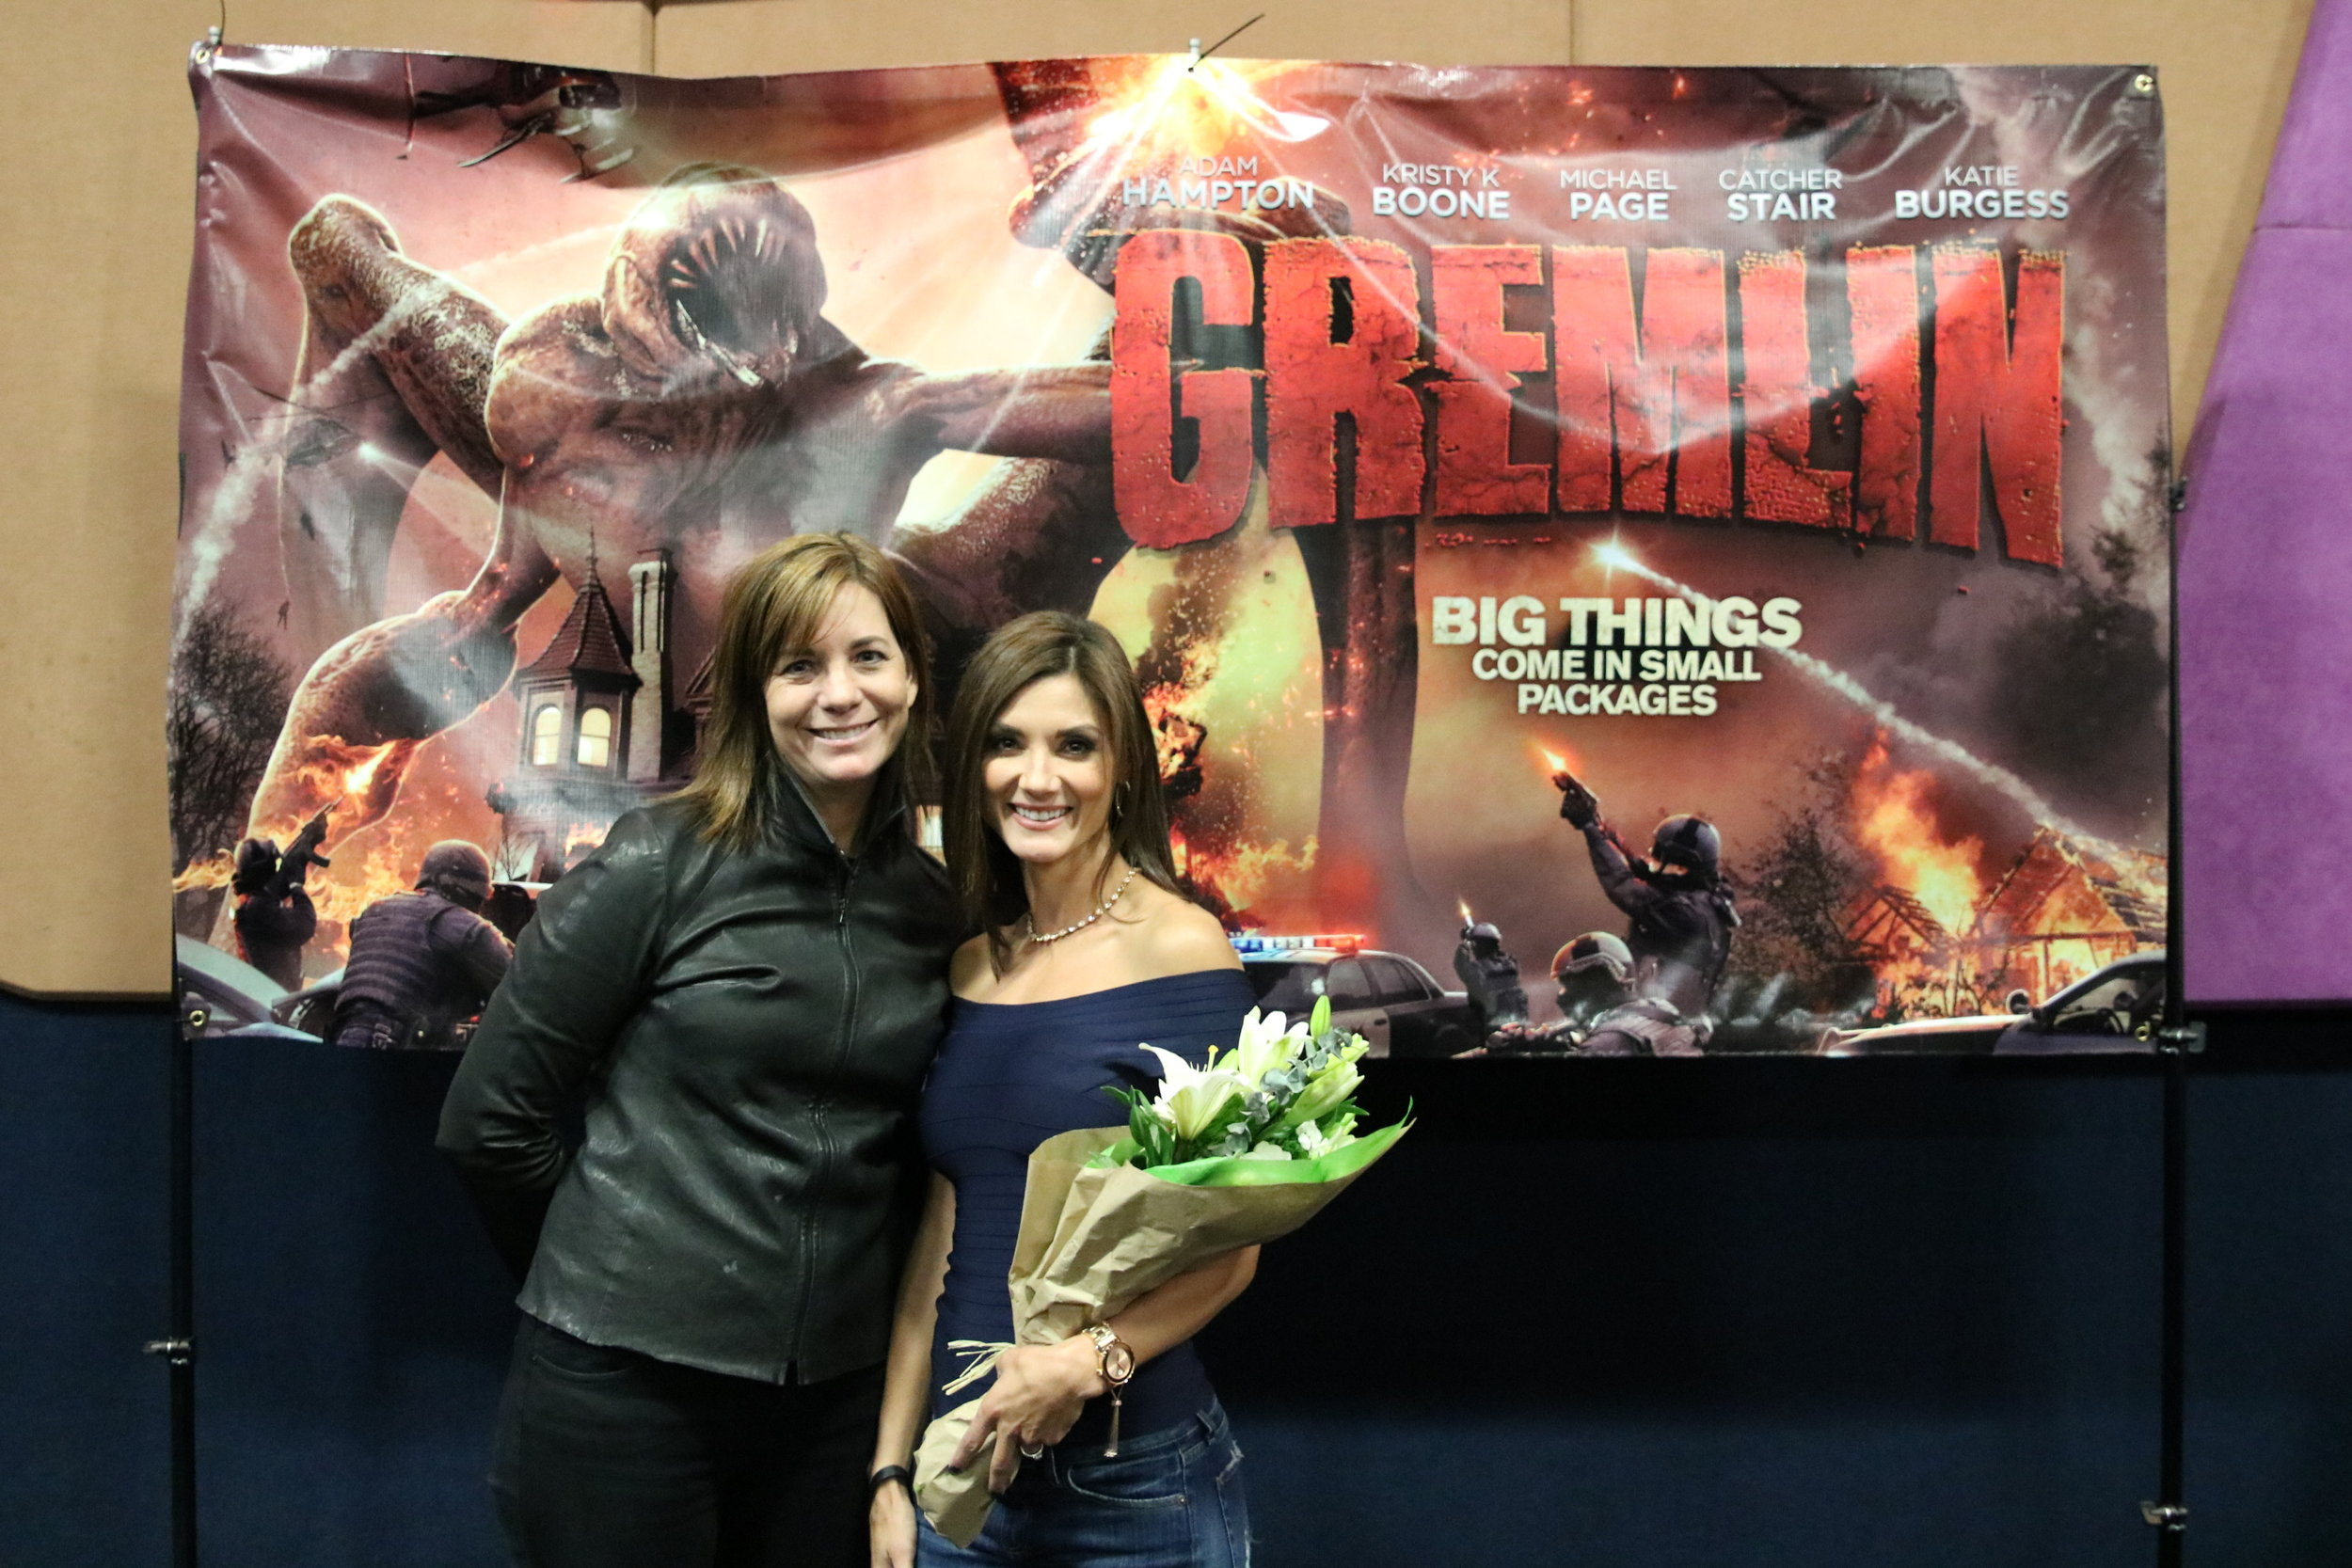 with Stephanie Timmermeyer, she was almost as excited to see this film as I was! I truly consider her one of my greatest fans. (Haha ;))